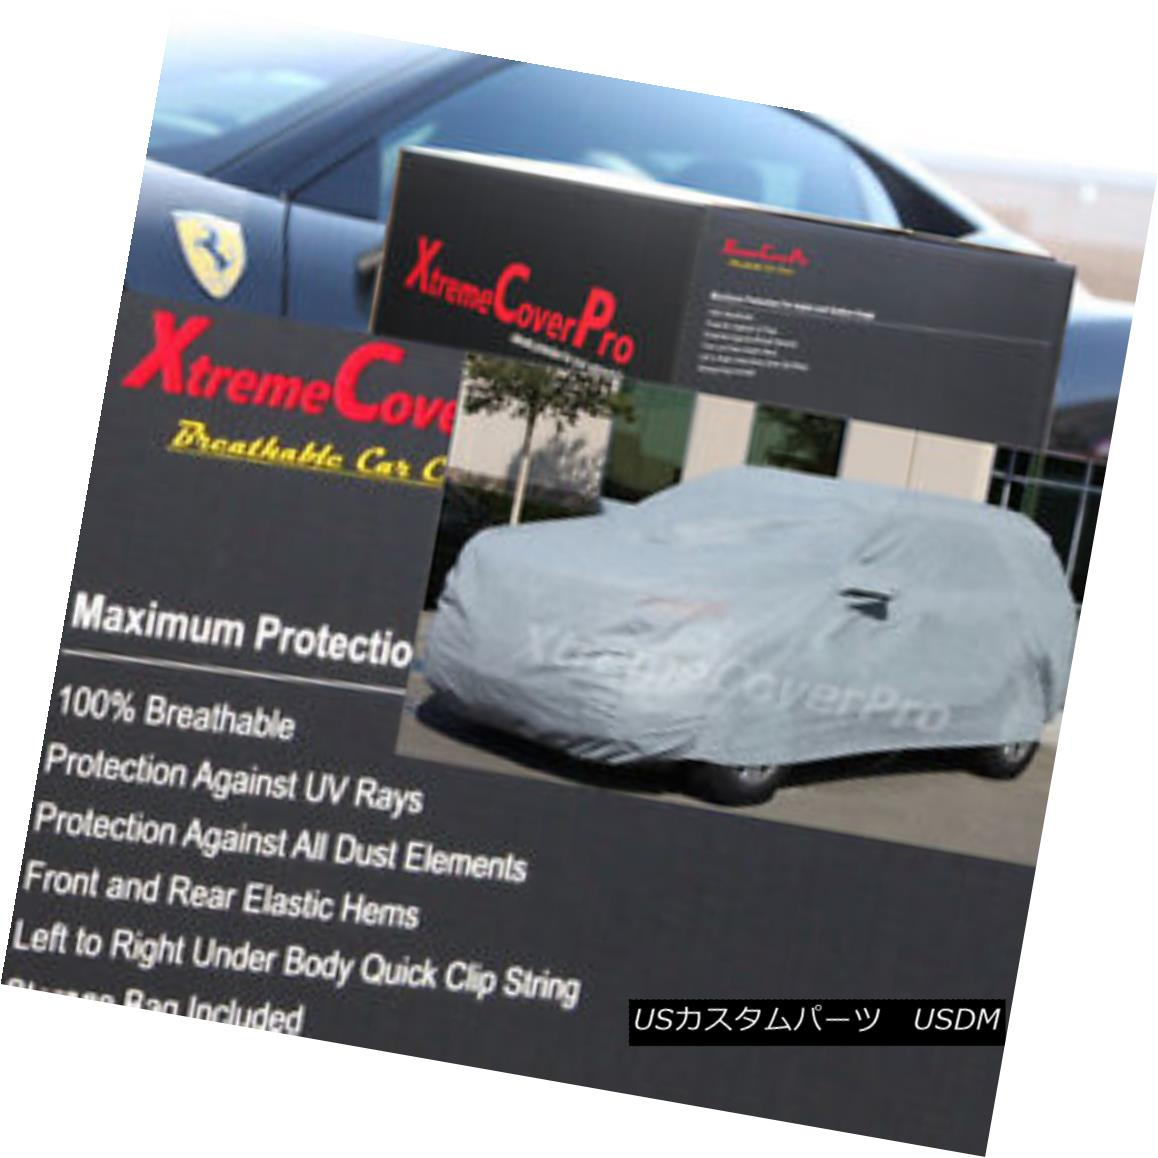 カーカバー 2001 2002 2003 2004 2005 2006 Mazda Tribute Breathable Car Cover w/MirrorPocket 2001 2002 2003 2004 2005 2006マツダトリビュートカーカバー付きMirrorPocket